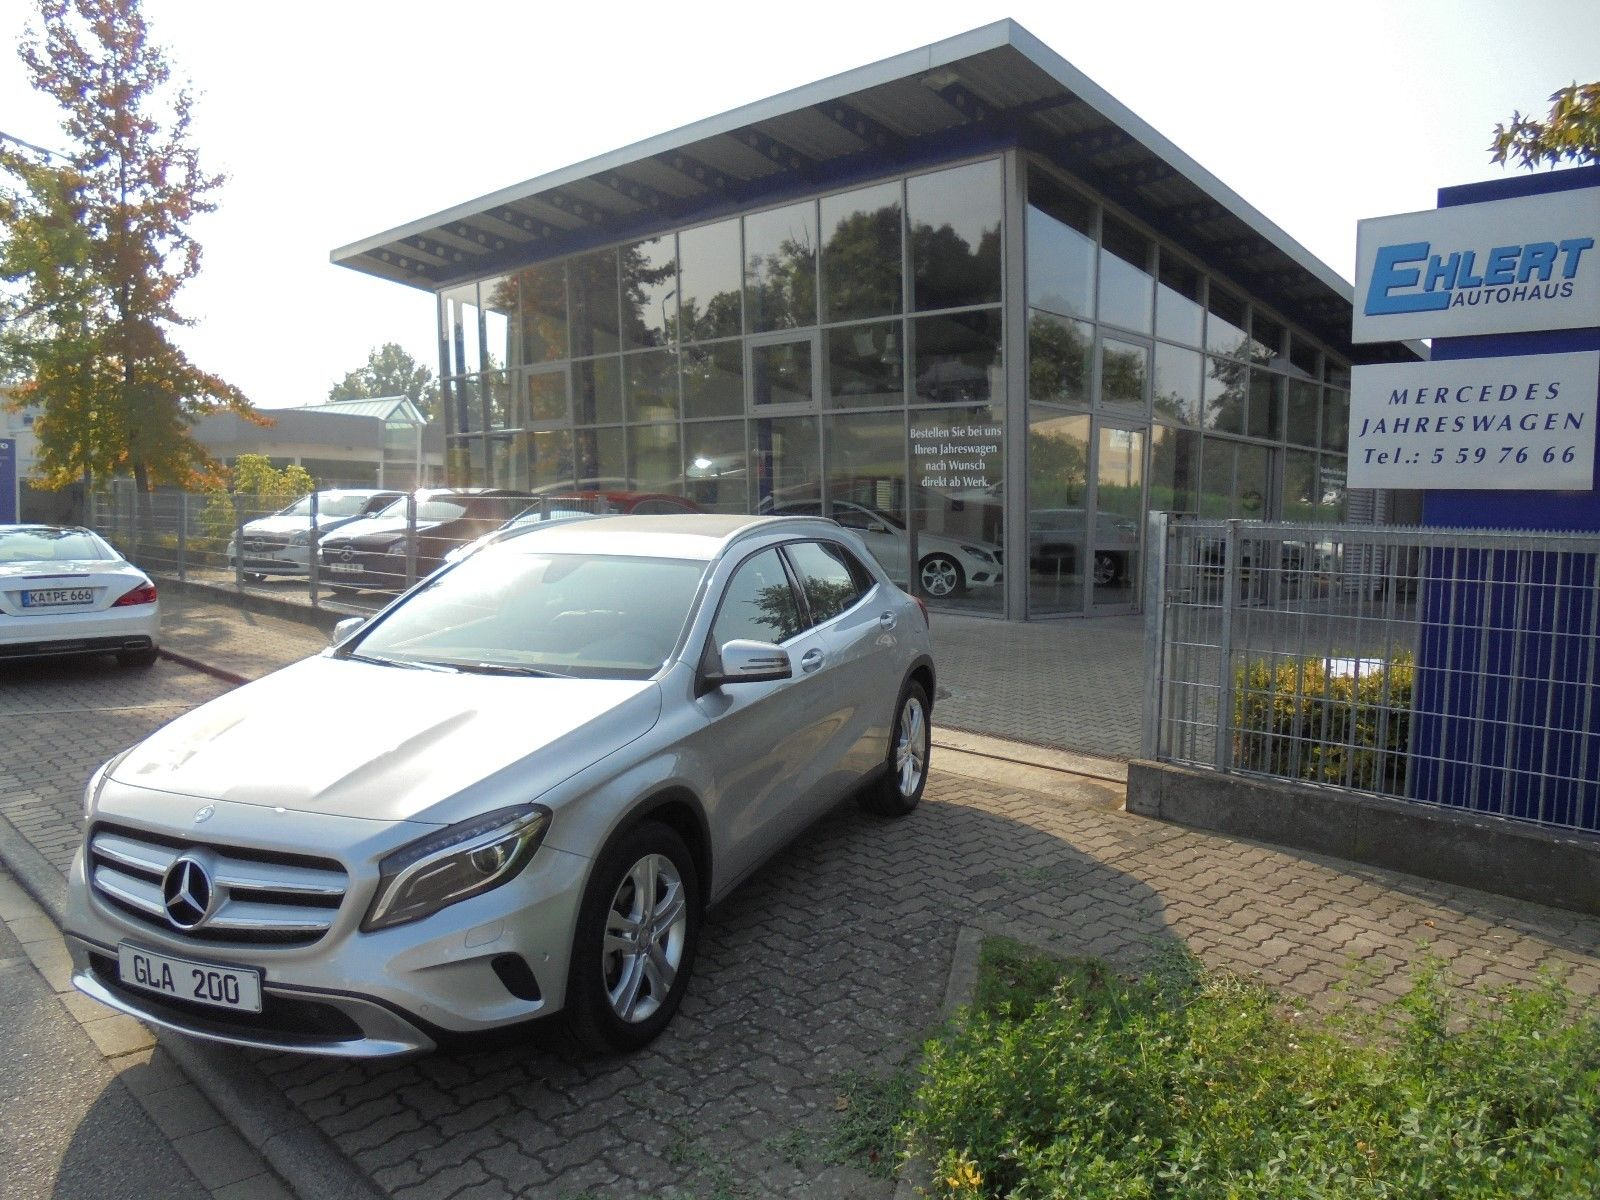 MERCEDES-BENZ GLA 200 URBAN